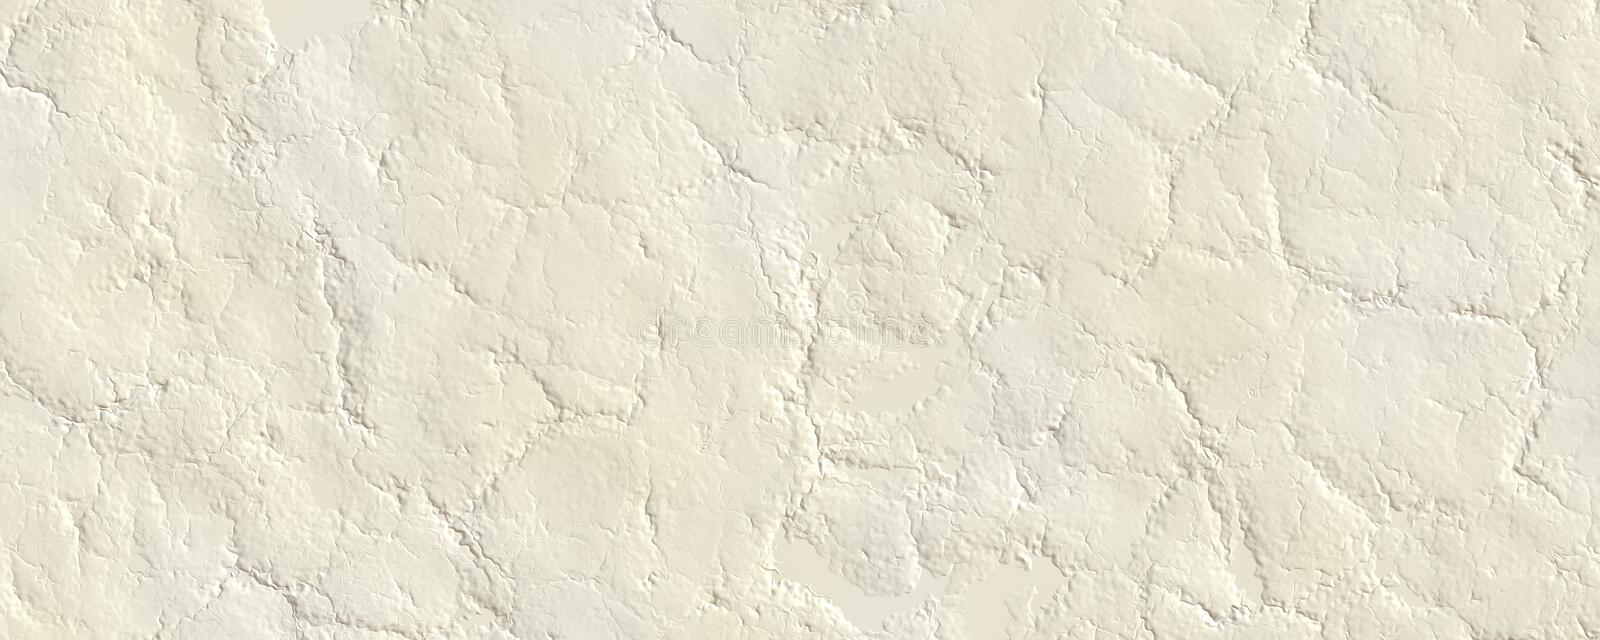 Close up white bone texture background stock illustration